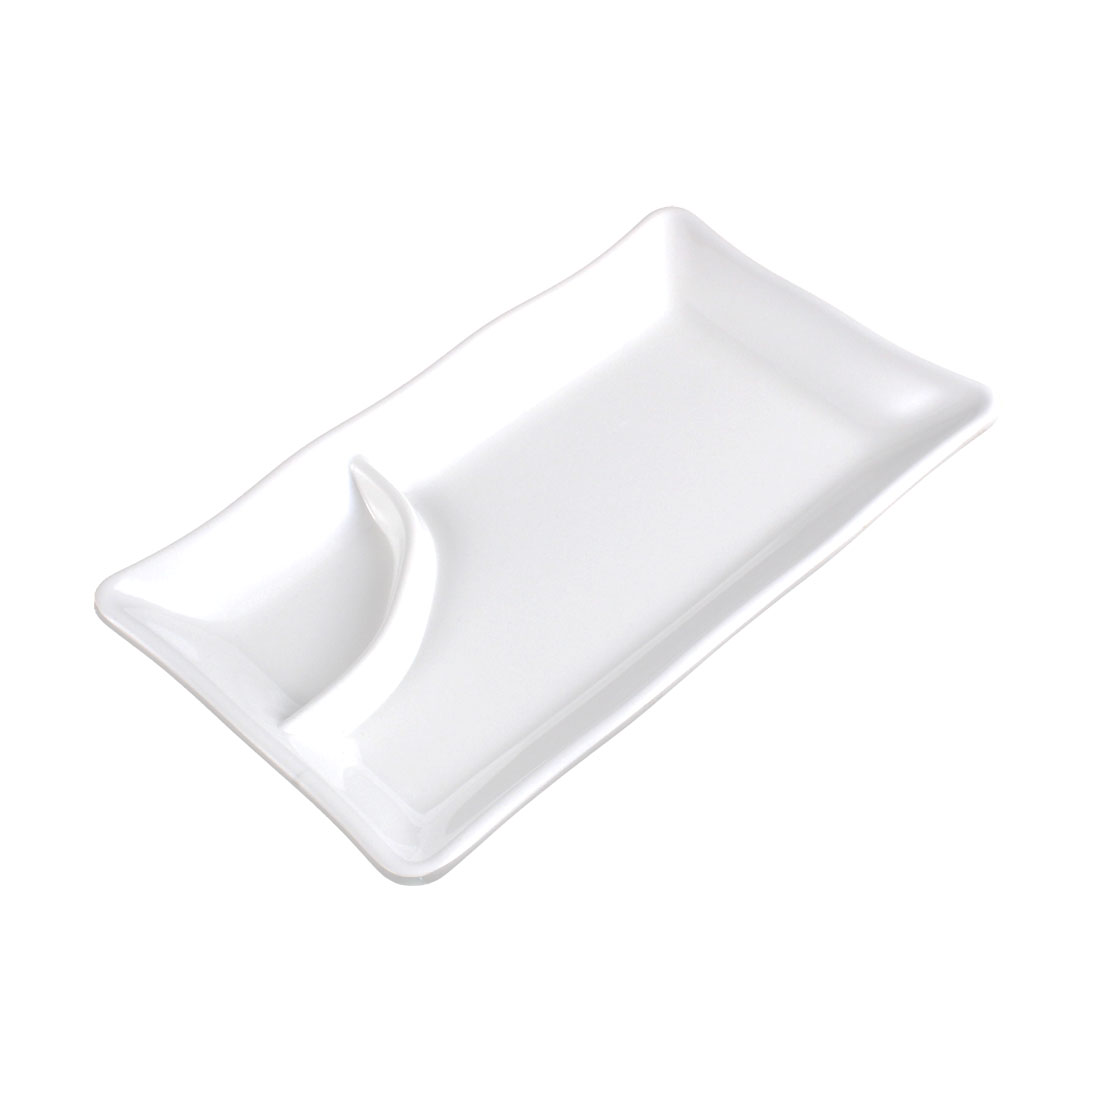 Home Plastic Rectangle Shaped 2 Compartments Food Sushi Plate Dish White